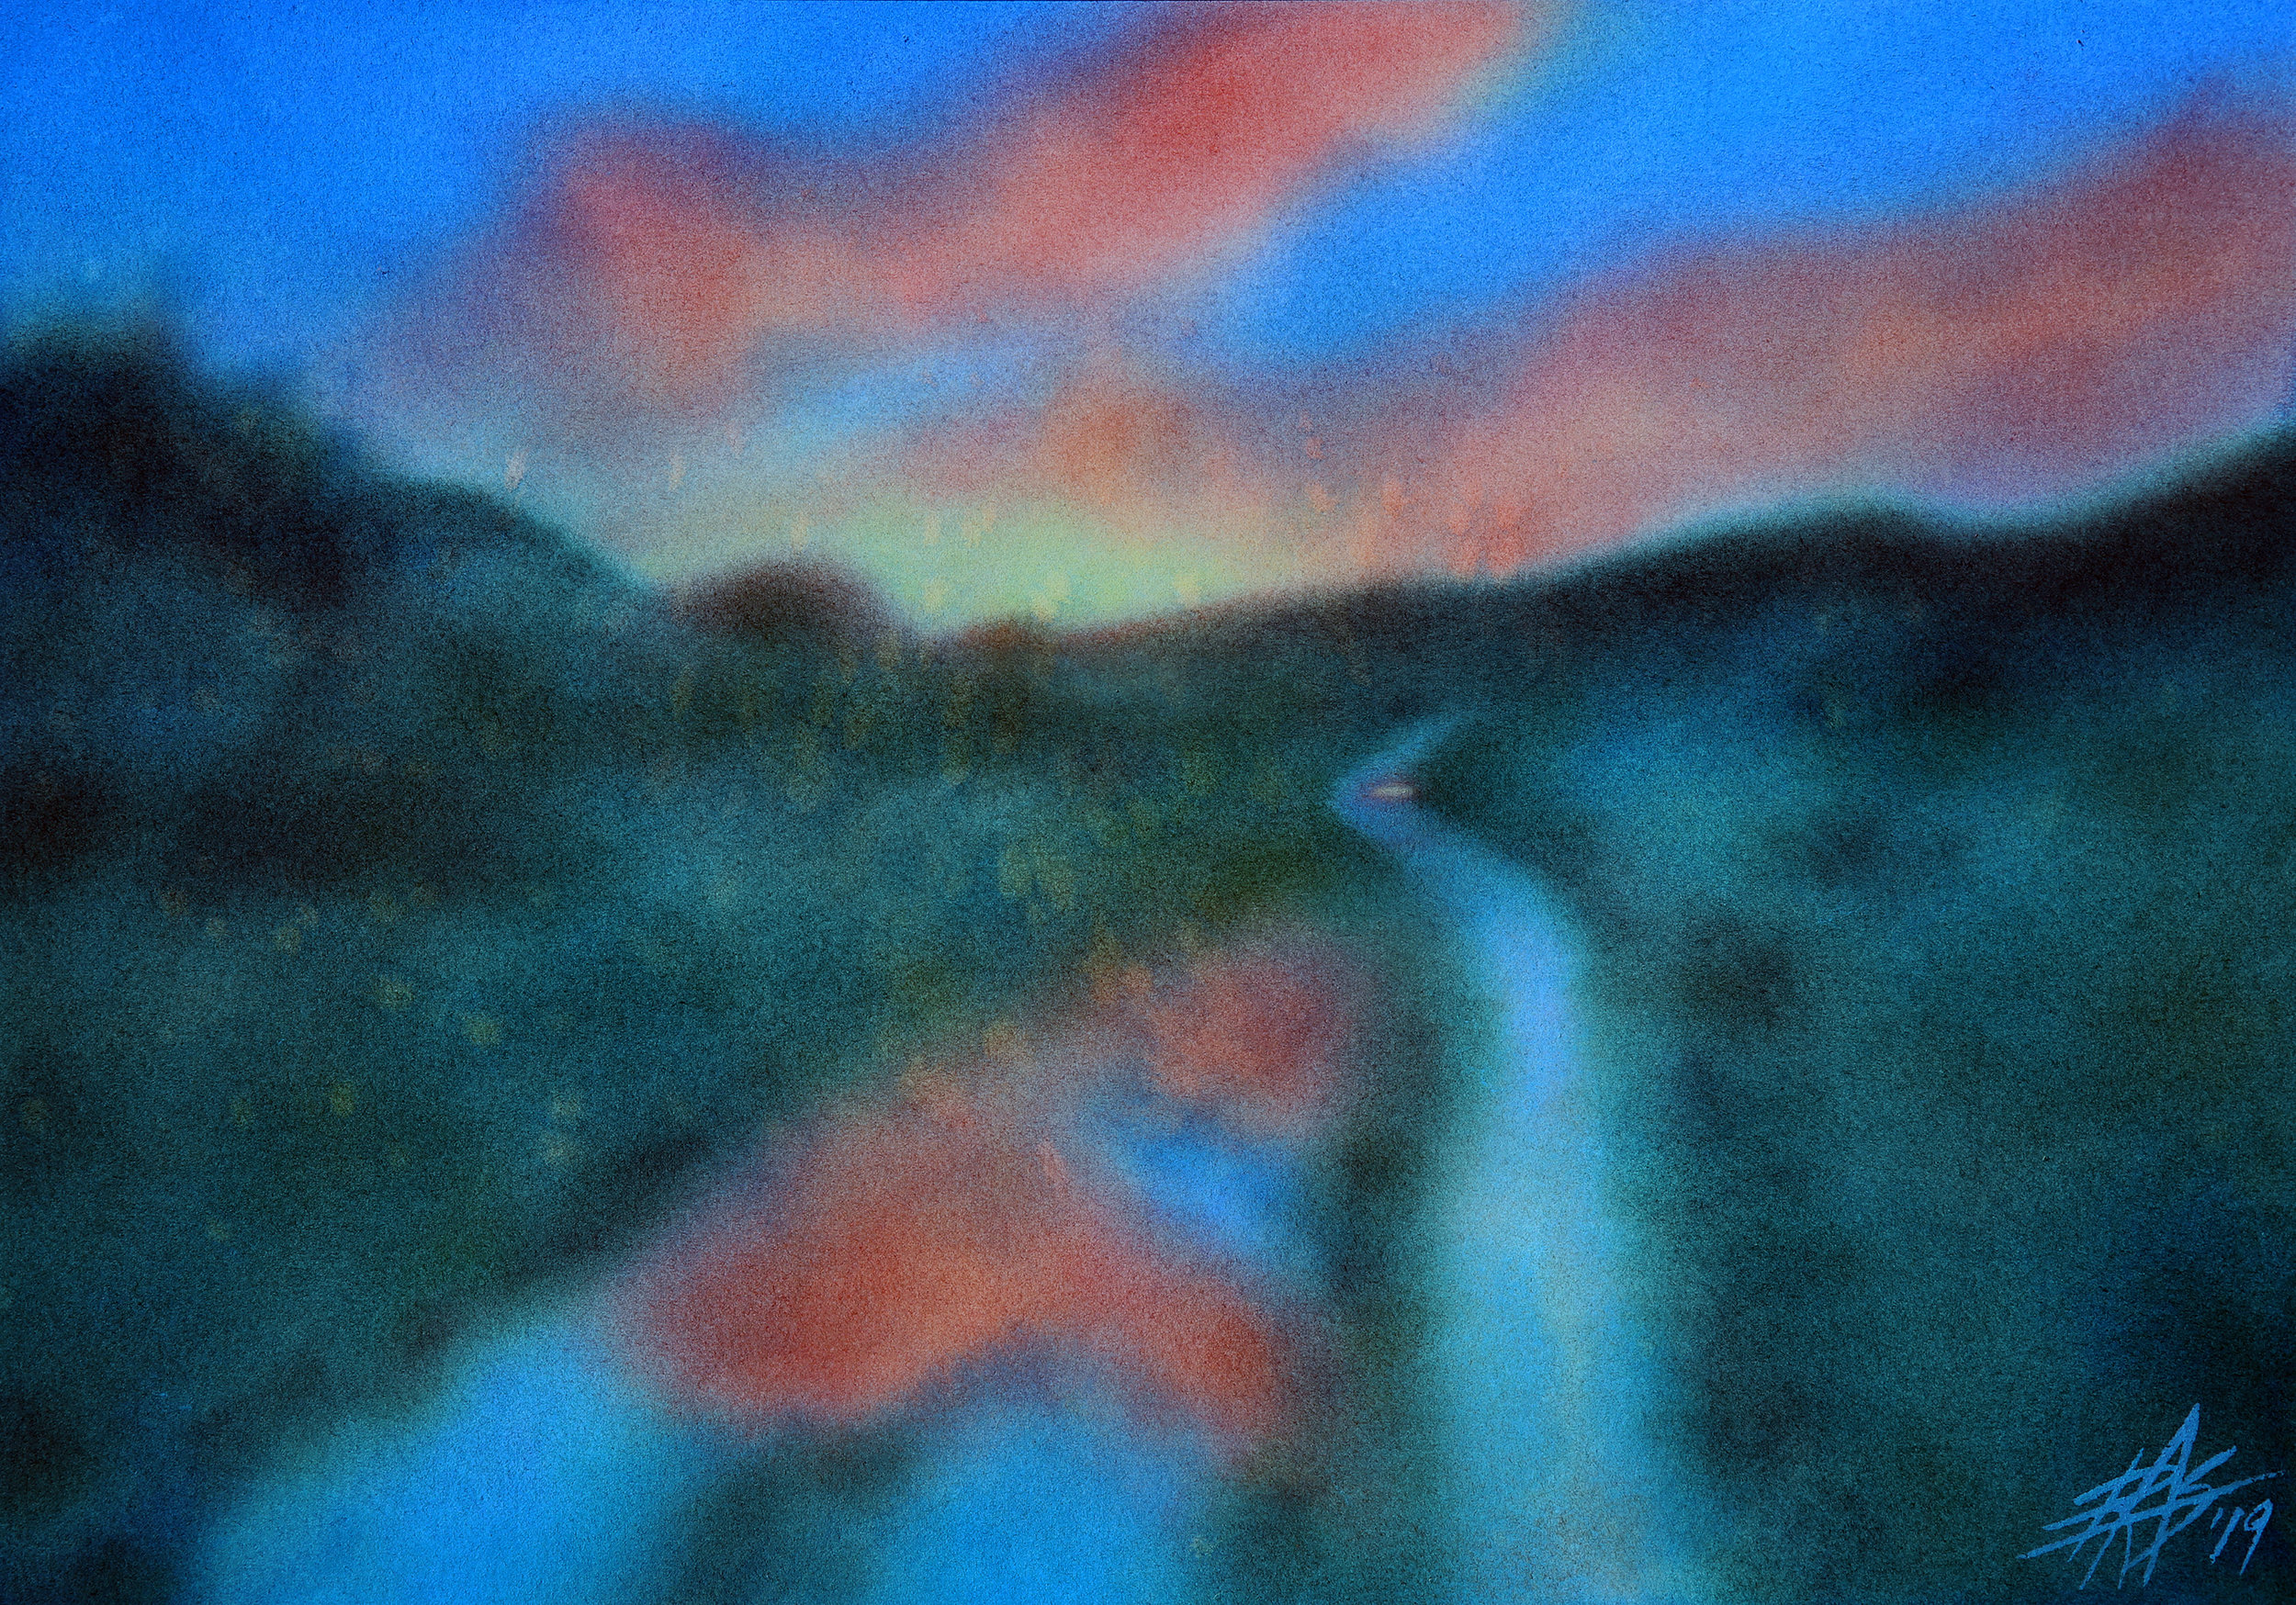 "Robin Street-Morris.  Los Peñasquitos Canyon XVI . 2019. Transparent watercolor and powdered soft pastel on 300lb hot press paper. 14"" x 20"" (36 x 51cm)."